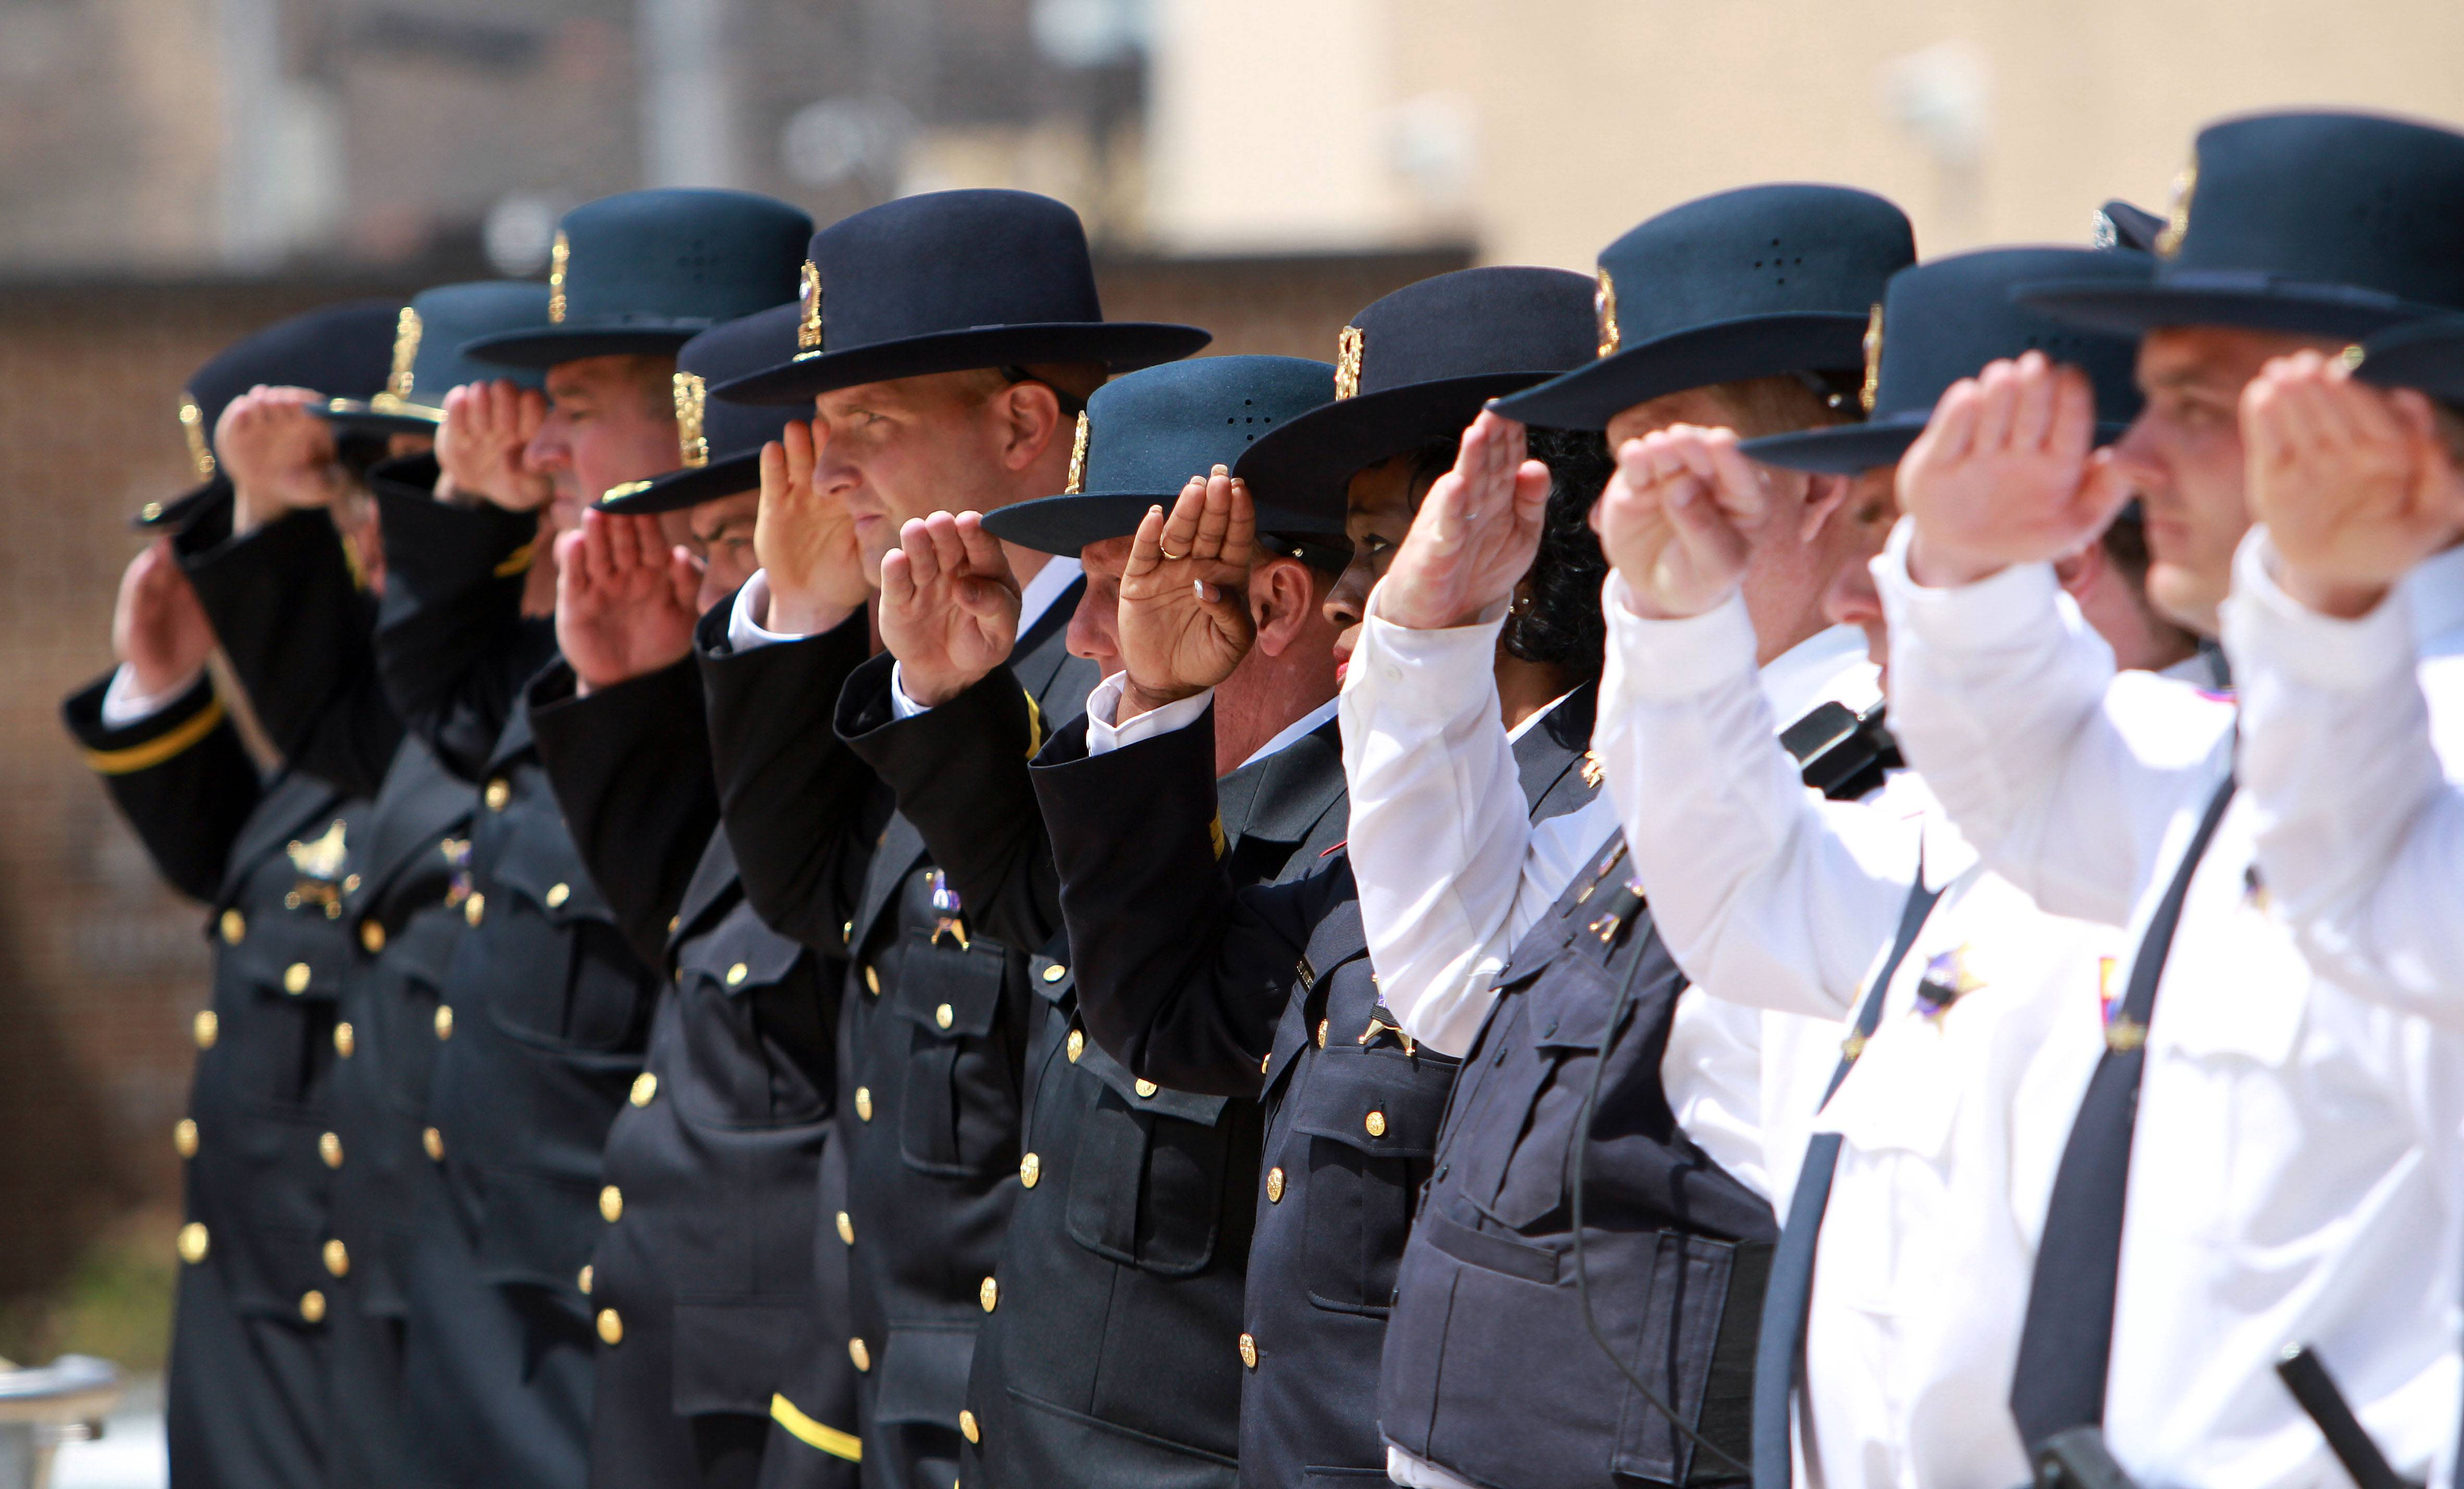 Local police officers salute Friday during the Lake County Police Memorial at Lincoln Memorial Plaza in Waukegan. The ceremony honored 17 officers from Lake County who have died in the line of duty since 1894.